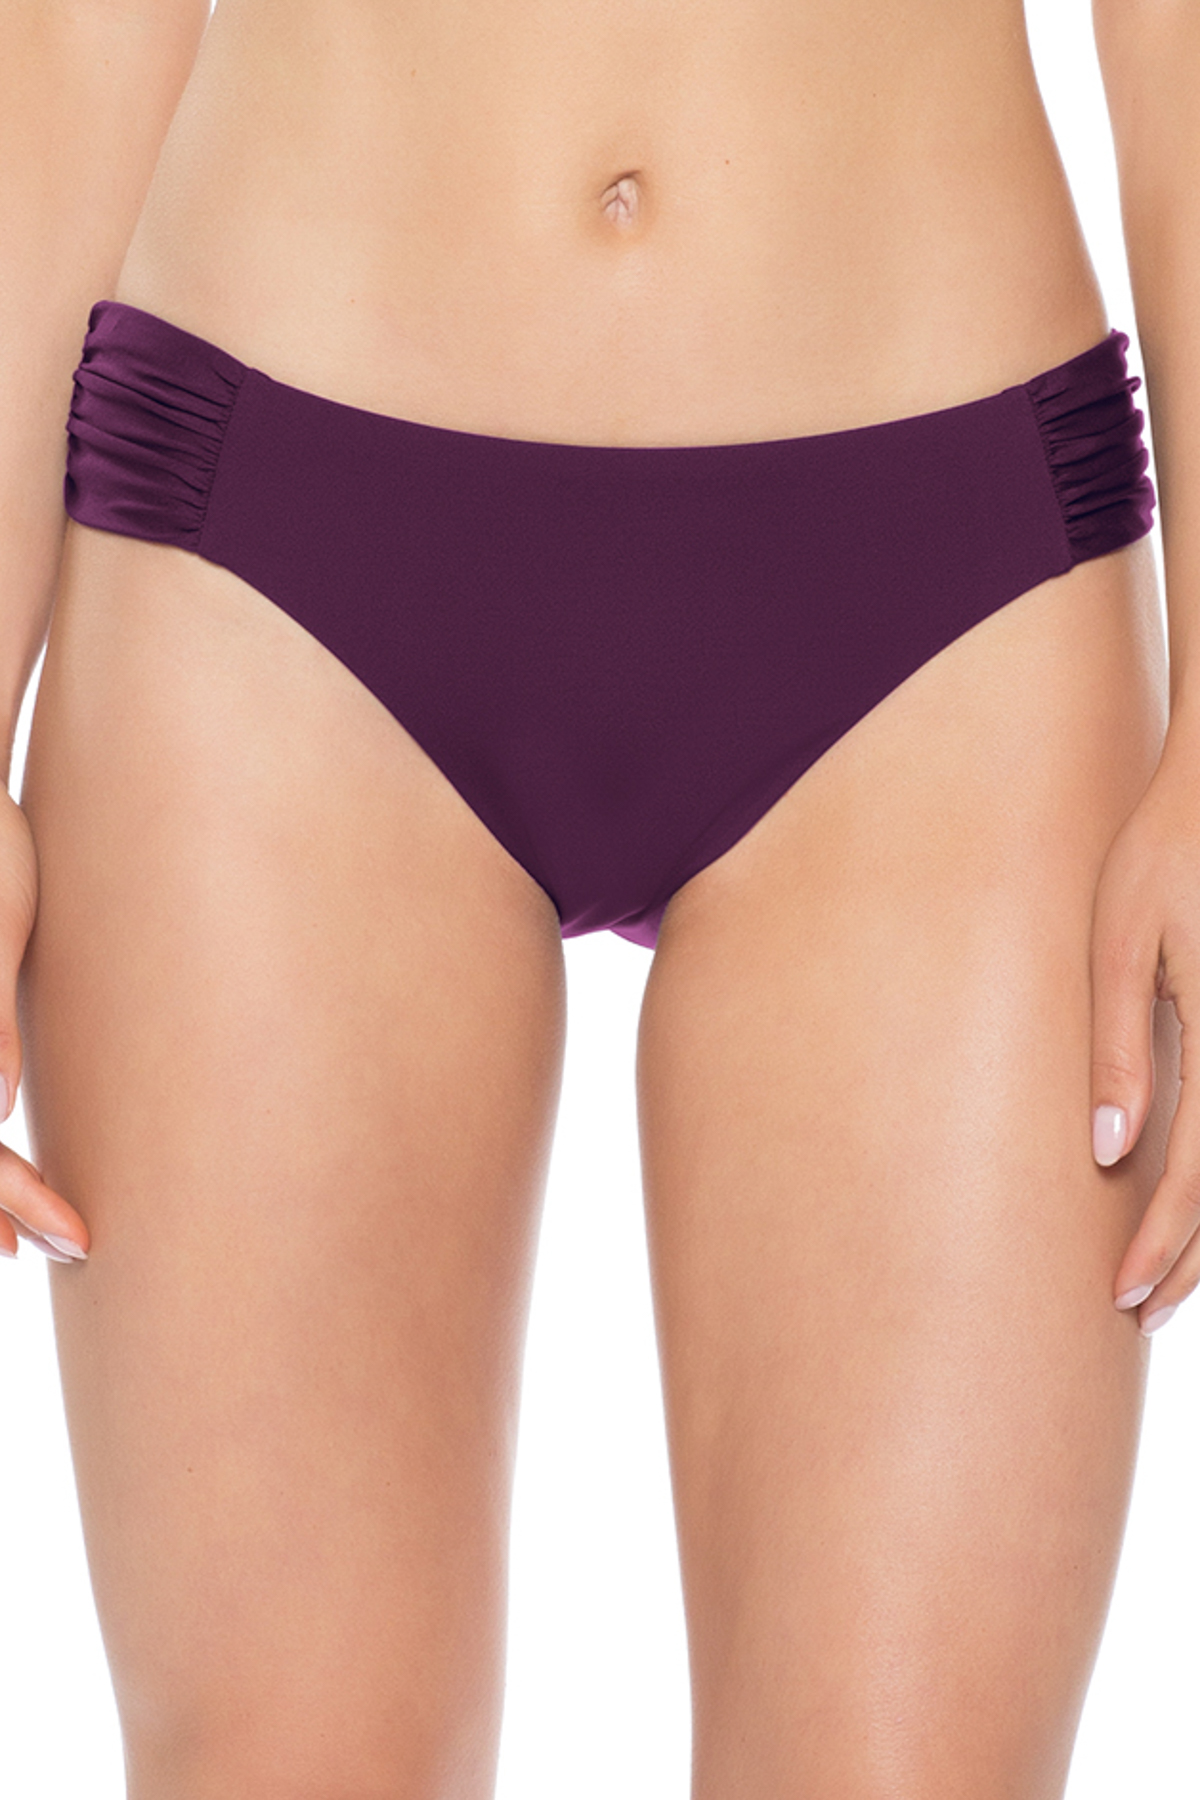 American Shirred Tab Side Hipster Bikini Bottom - Merlot 7